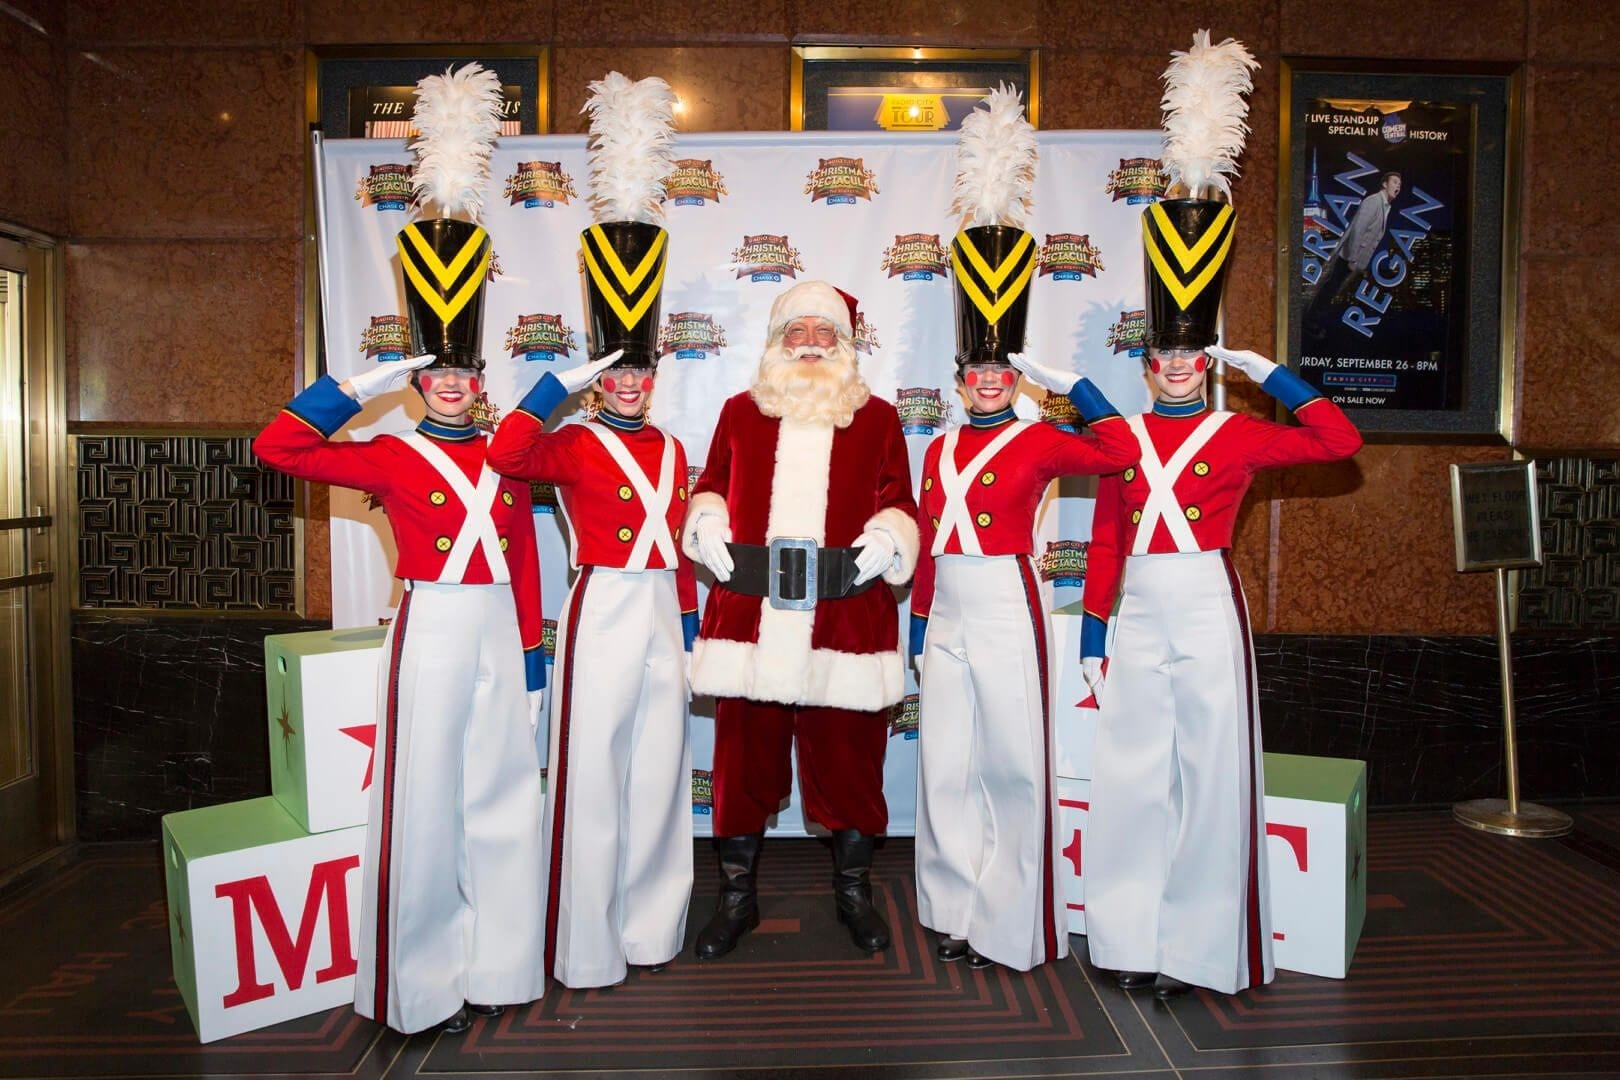 """Hamrah (second from the left) and fellow Rockettes at a """"Christmas in August"""" event"""